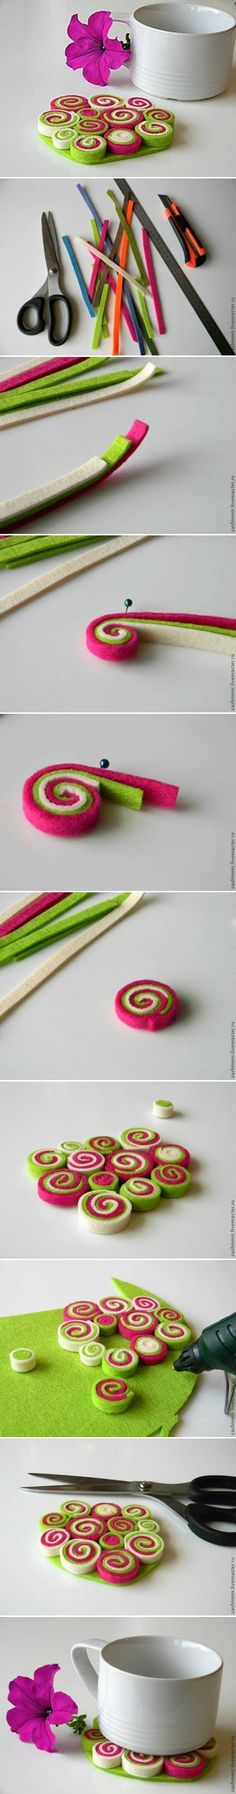 DIY Felt Coasters flowers diy crafts home made easy crafts craft idea crafts ideas diy ideas diy crafts diy idea do it yourself diy projects diy craft handmade coasters Felt Diy, Felt Crafts, Fabric Crafts, Diy And Crafts, Arts And Crafts, Felt Coasters, Diy Coasters, Diy Projects To Try, Craft Projects